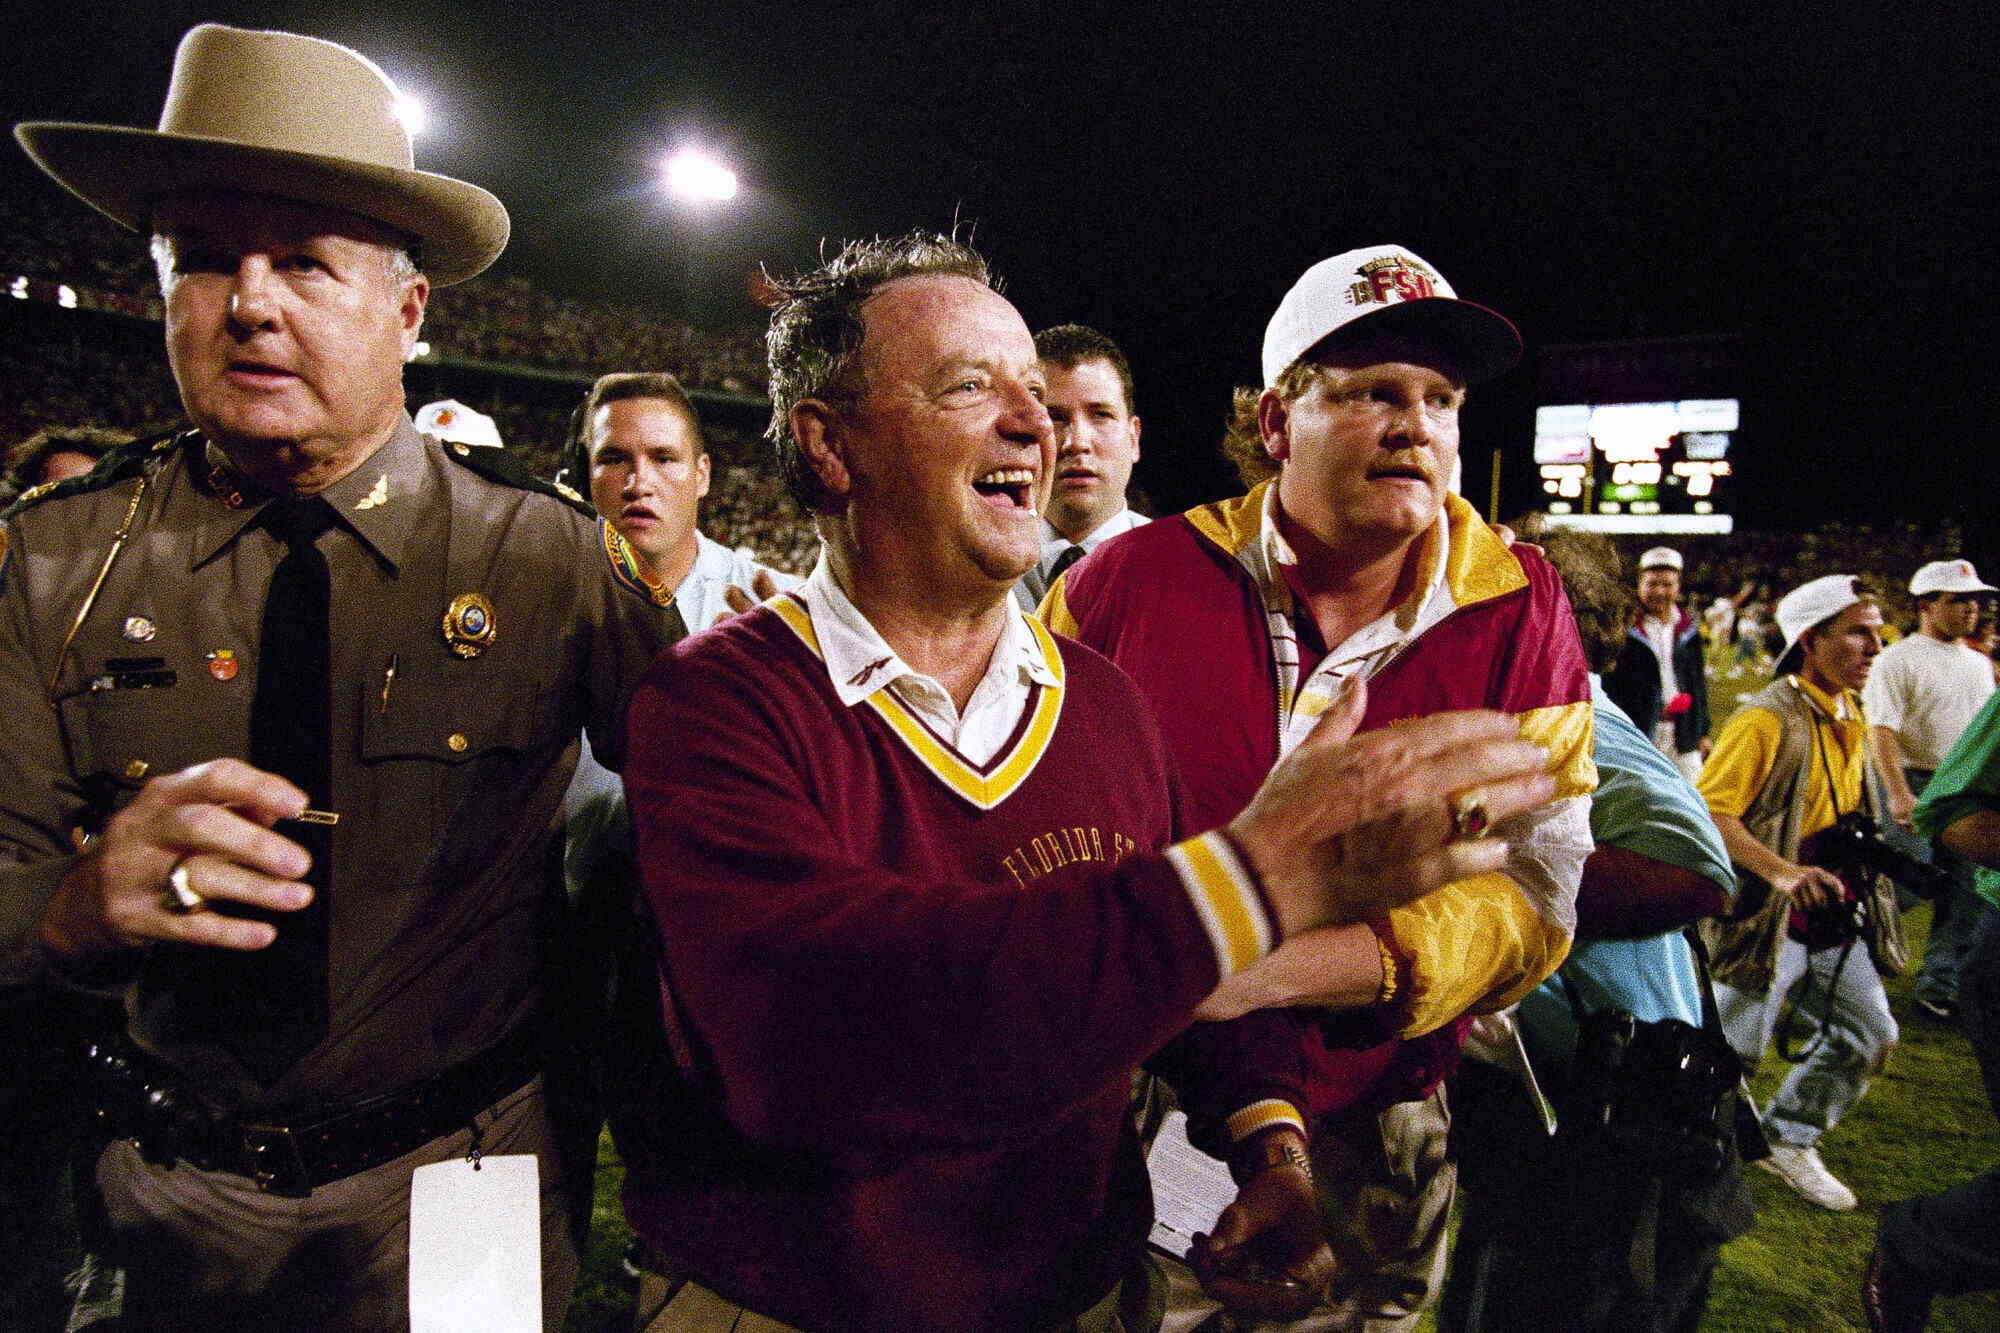 Bobby Bowden, smiling, stands with a crowd of other people on the football field.